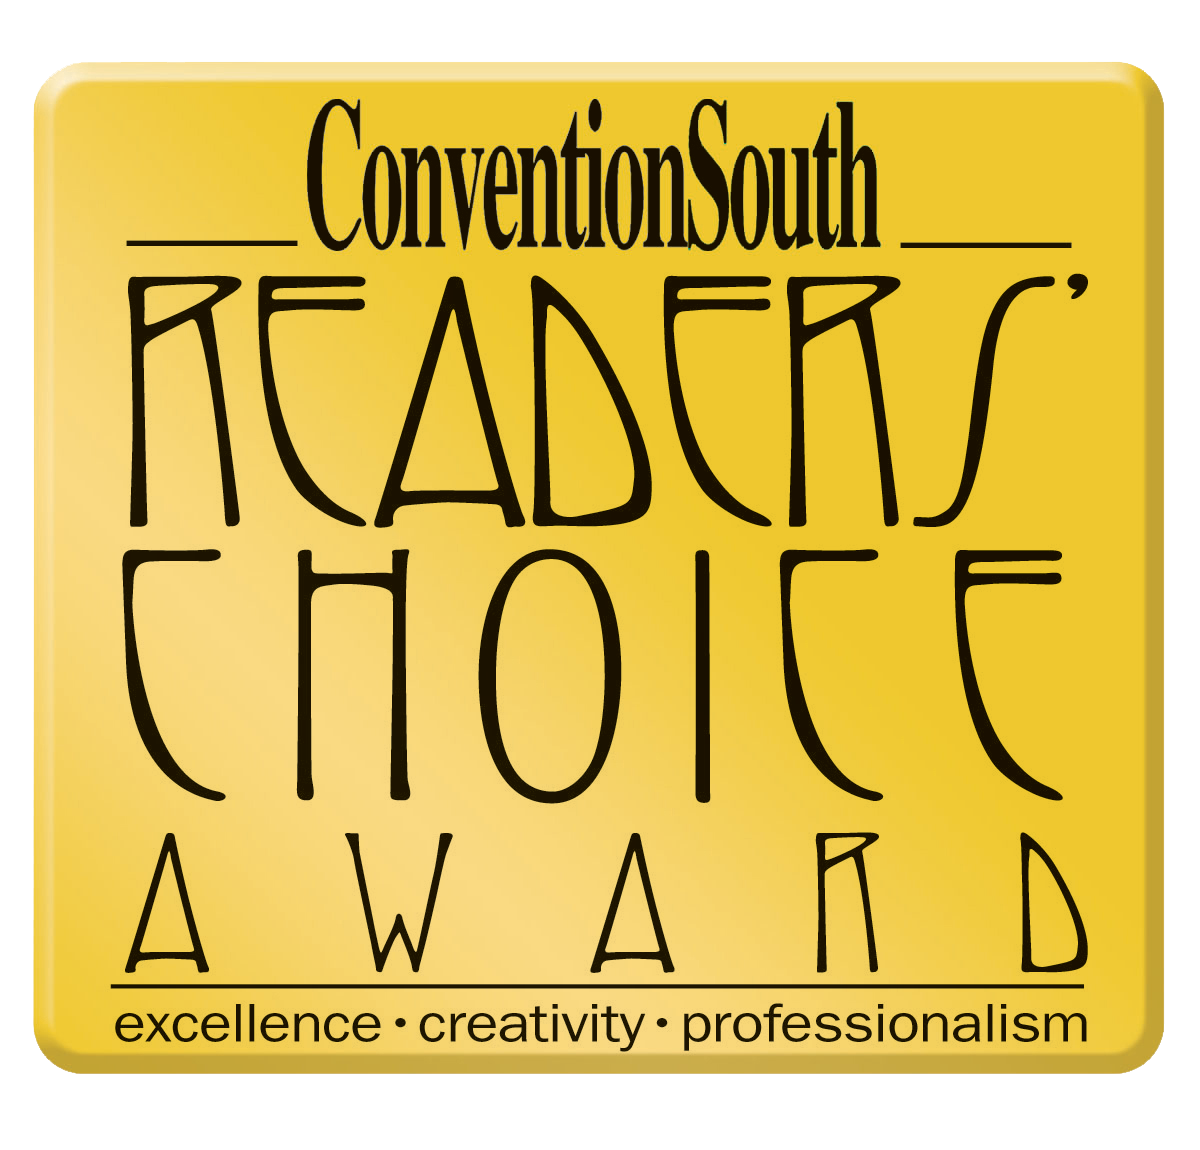 ConventionSouth's Readers' Choice Award